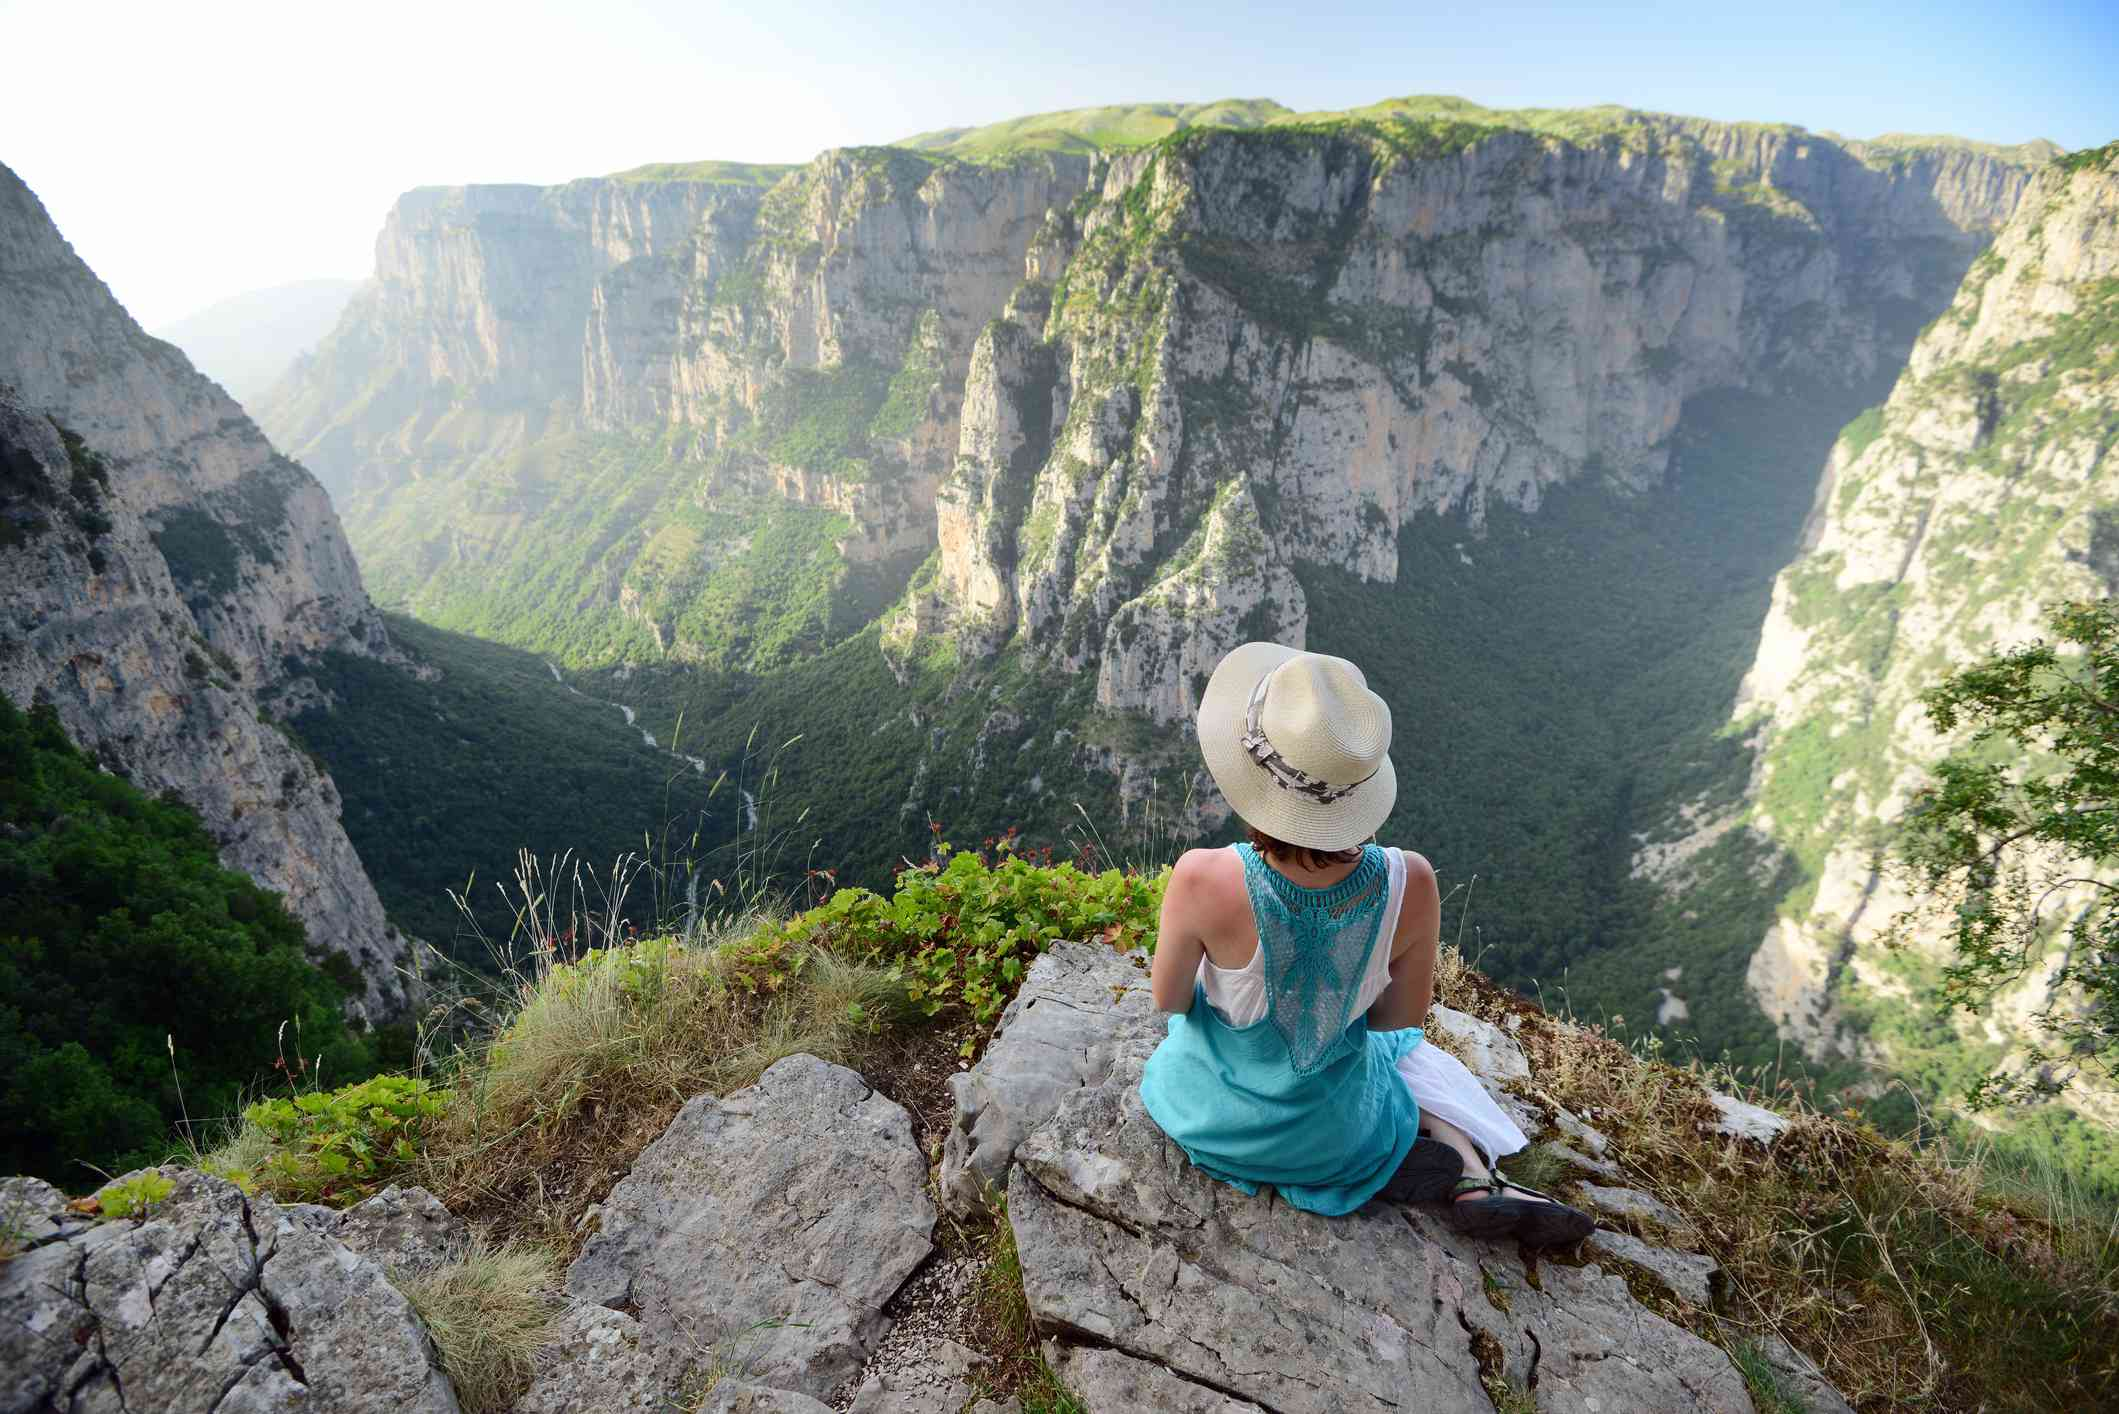 Young woman with blue dress and hat sitting over Vikos gorge, Timfy mountain, Zagoria / Epirus, Greece